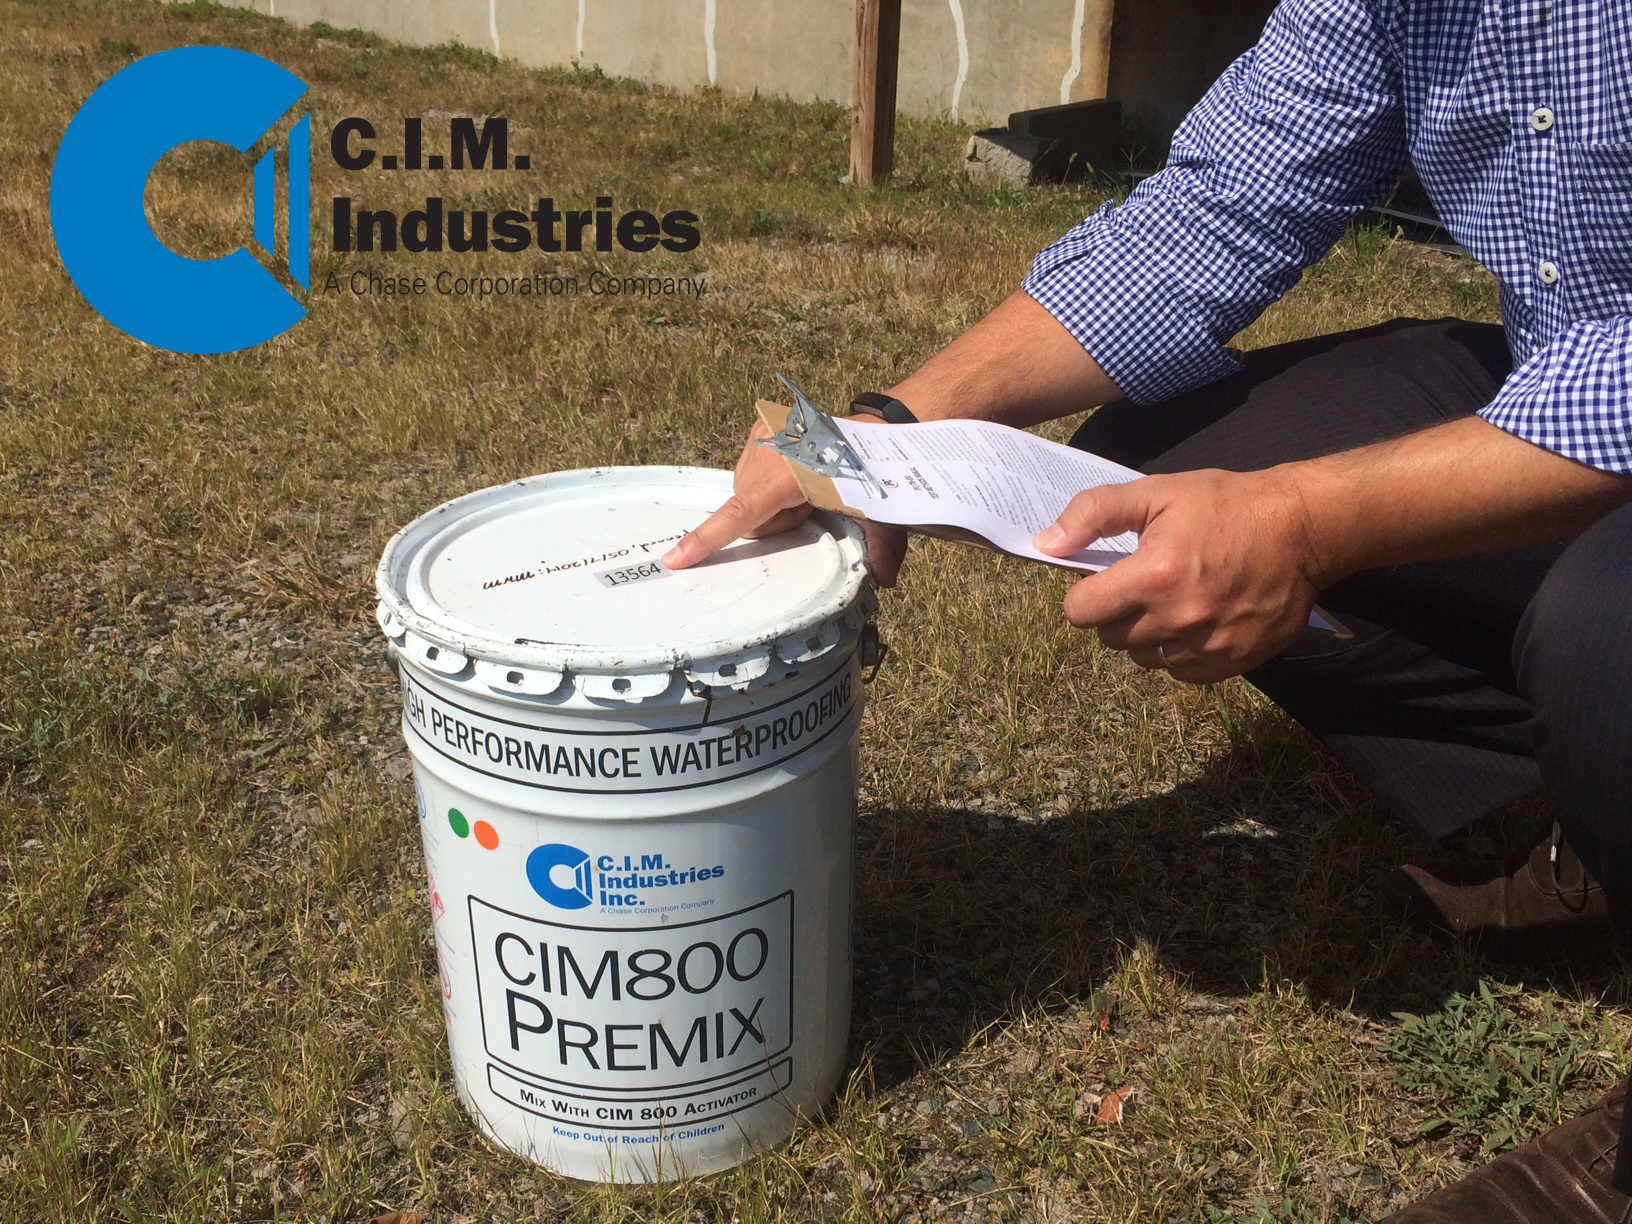 Contractor Verifying CIM Industries documentation